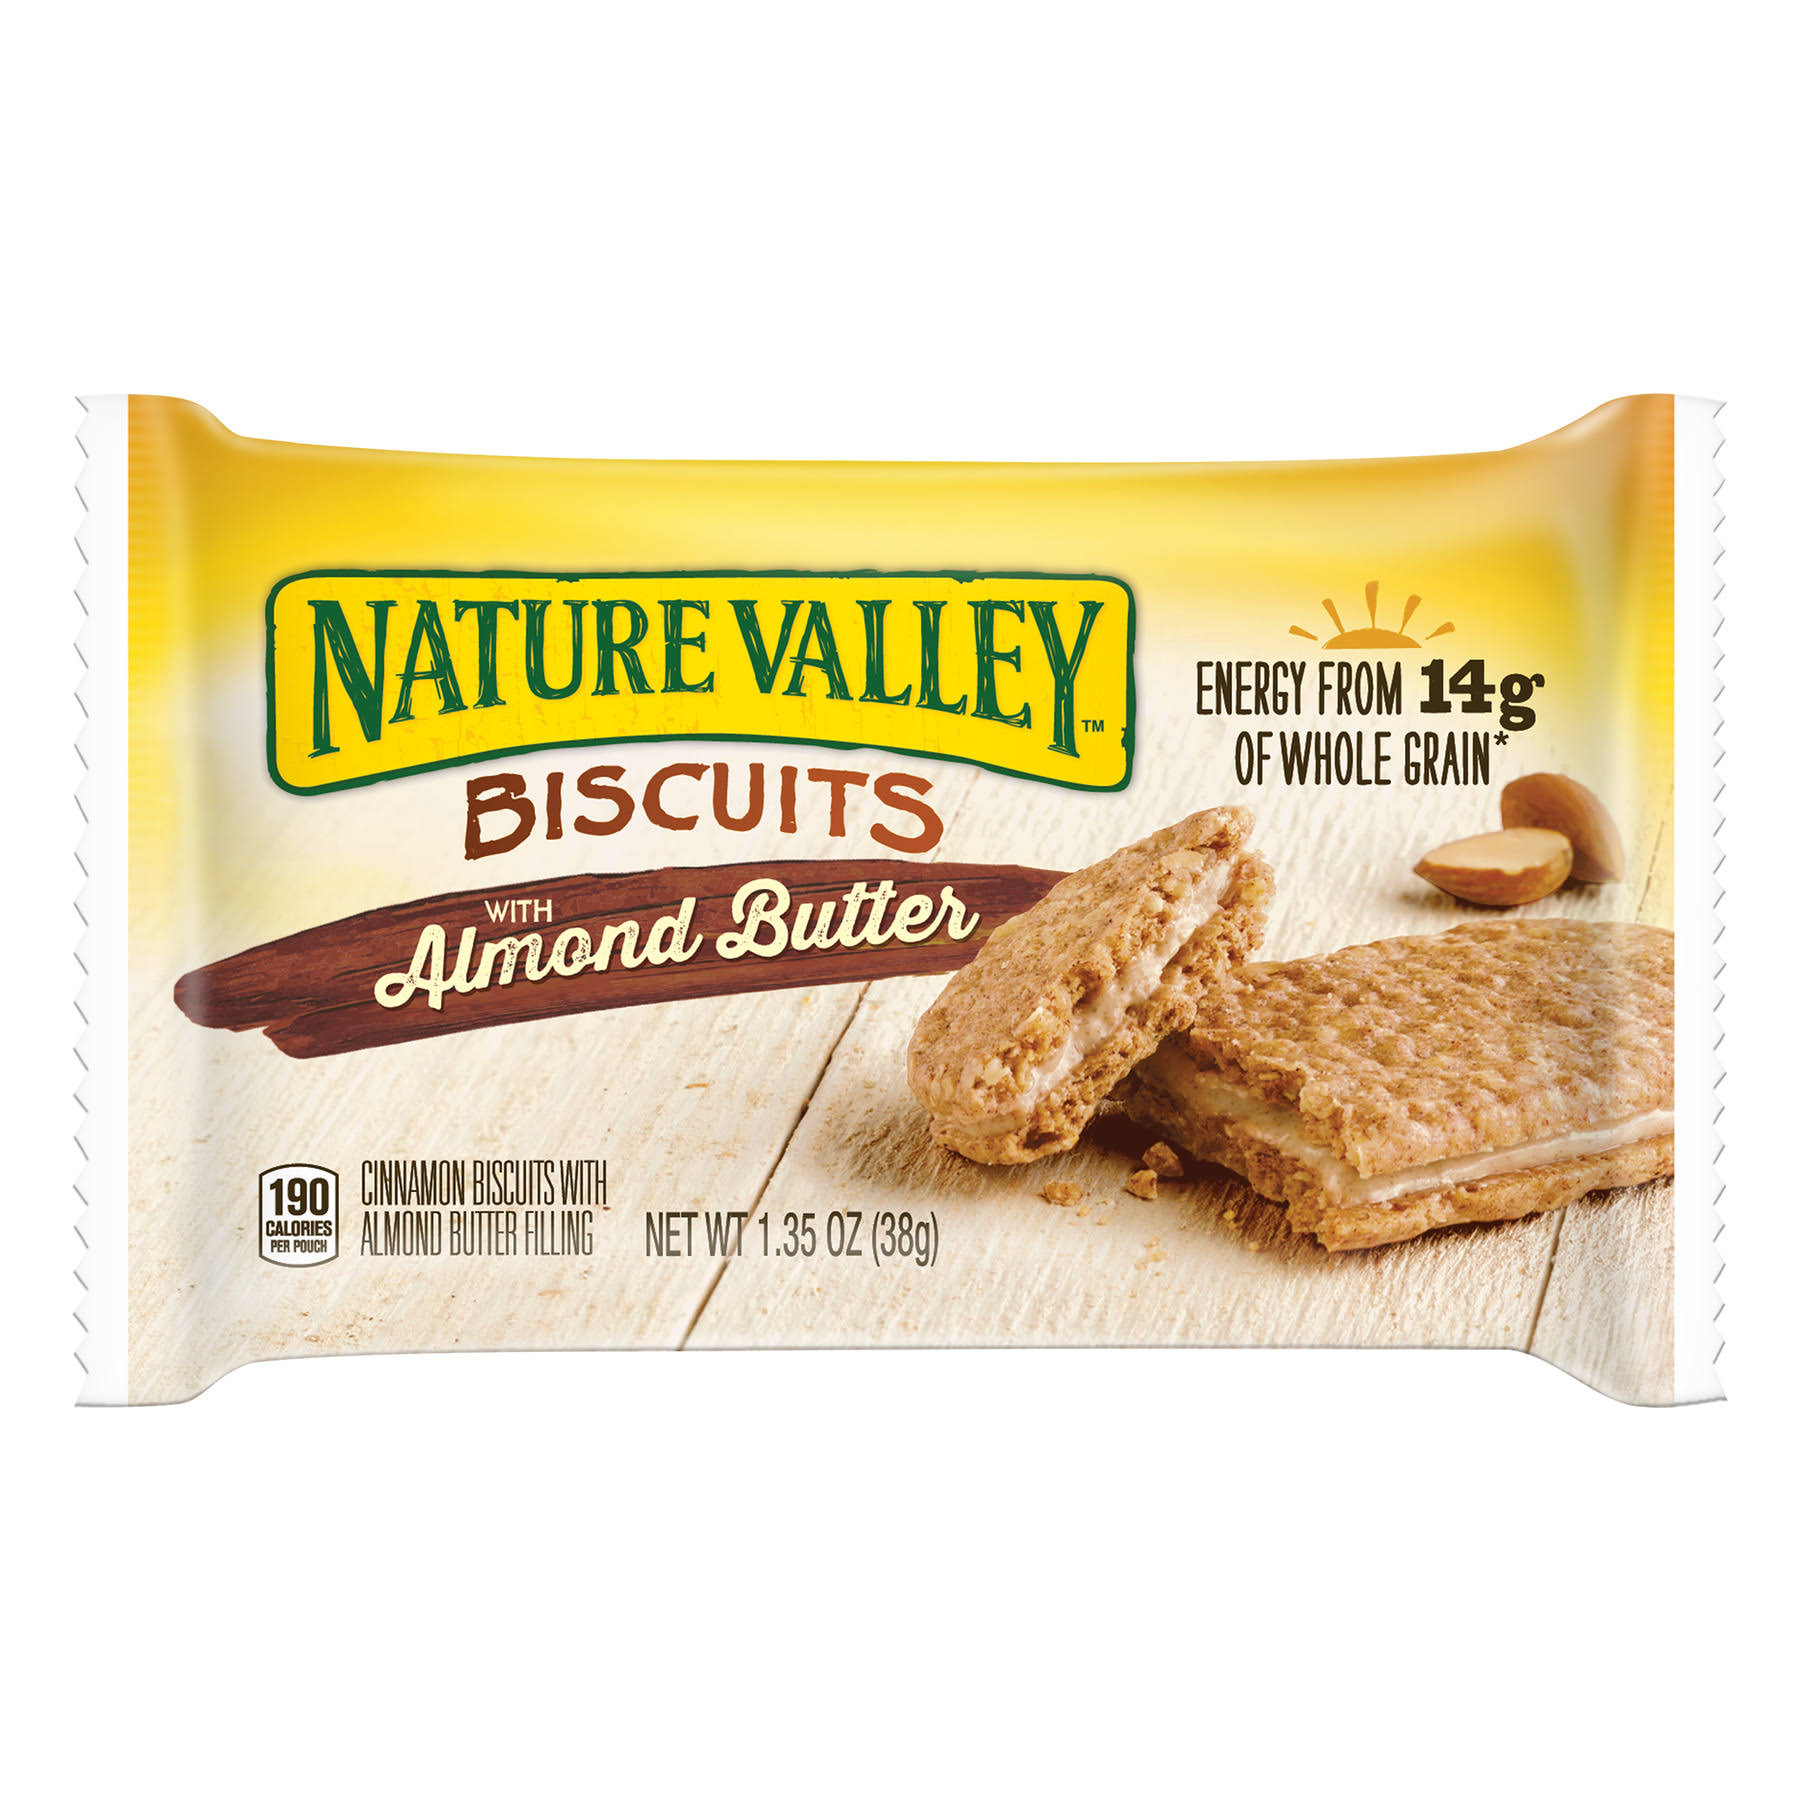 Nature Valley Biscuits - With Almond Butter, 1.35oz